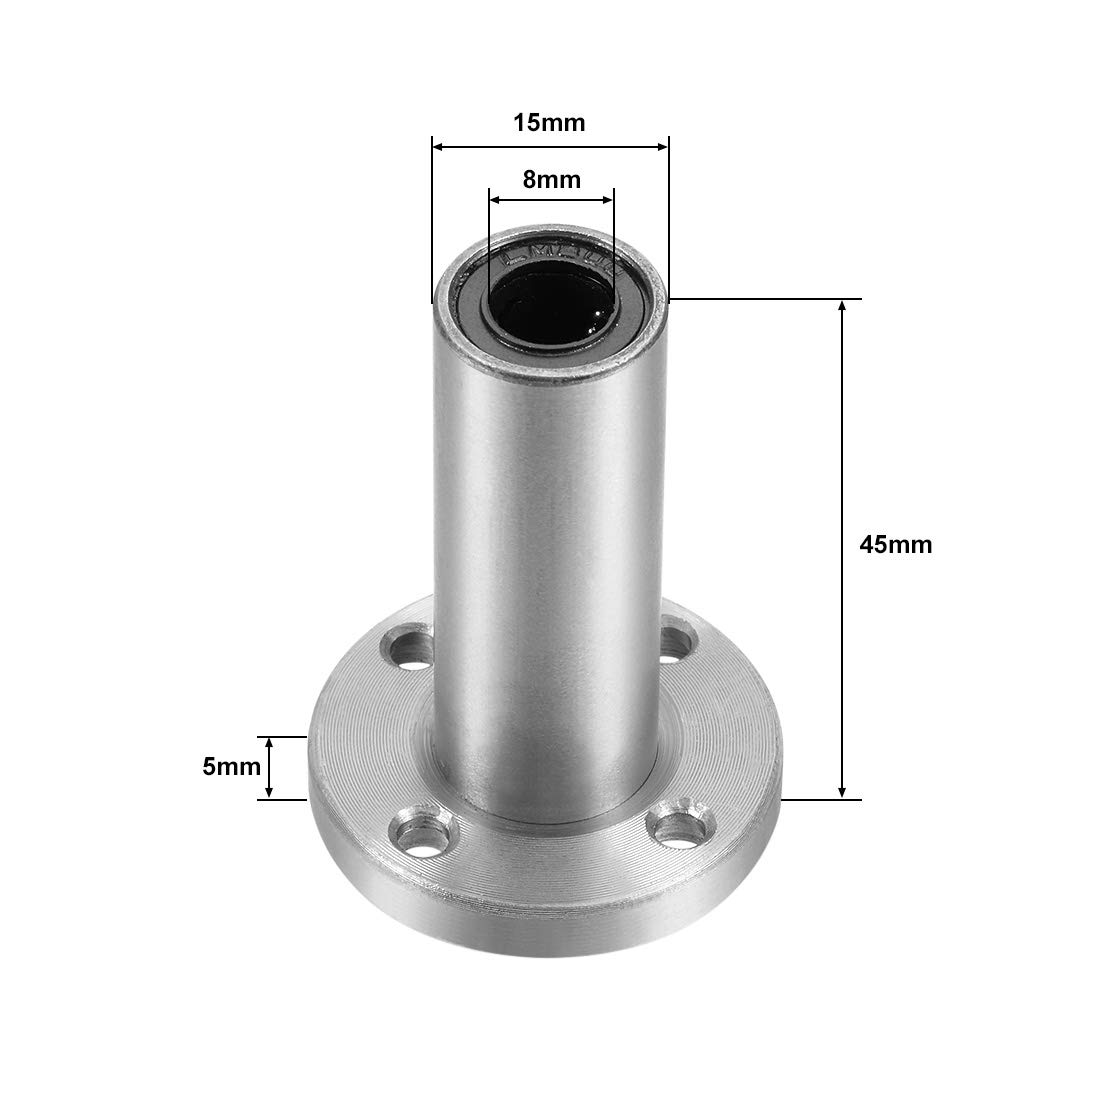 sourcing map LM8UU Extra Long Round Flange Linear Ball Bearings 8mm Bore Dia 45mm Length 1Pcs 15mm OD